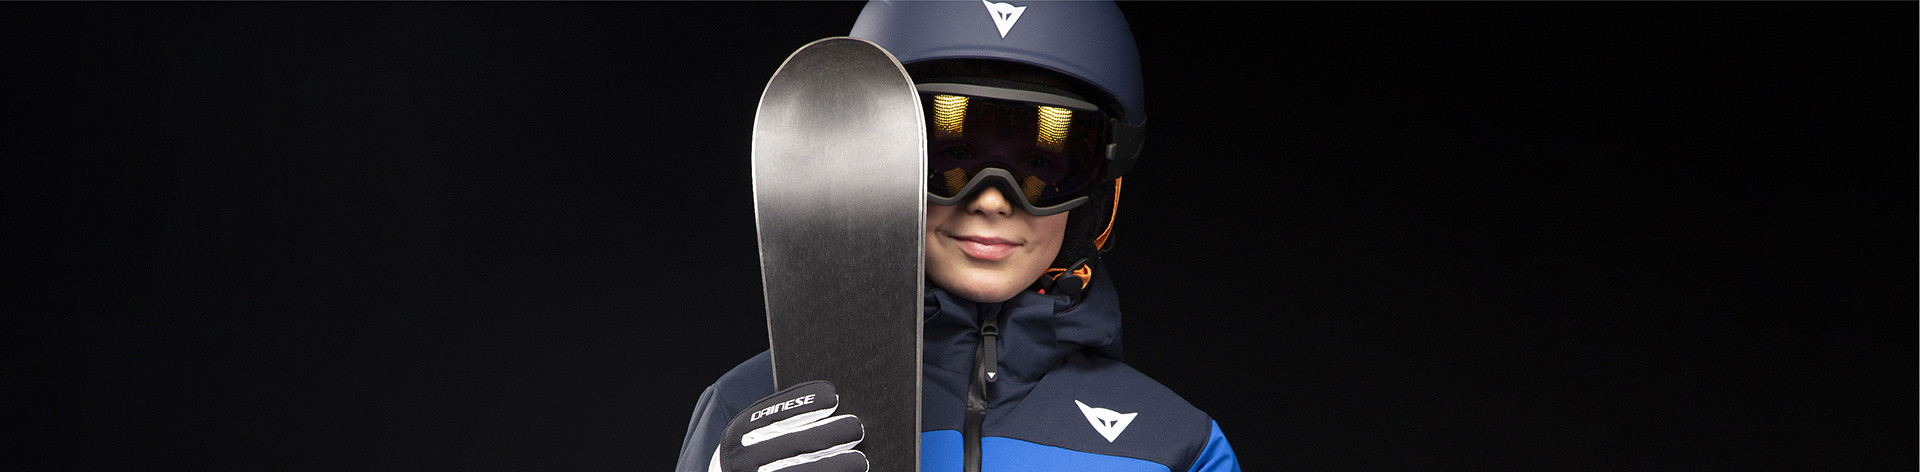 Dainese Winter Sports Scarabeo Kid